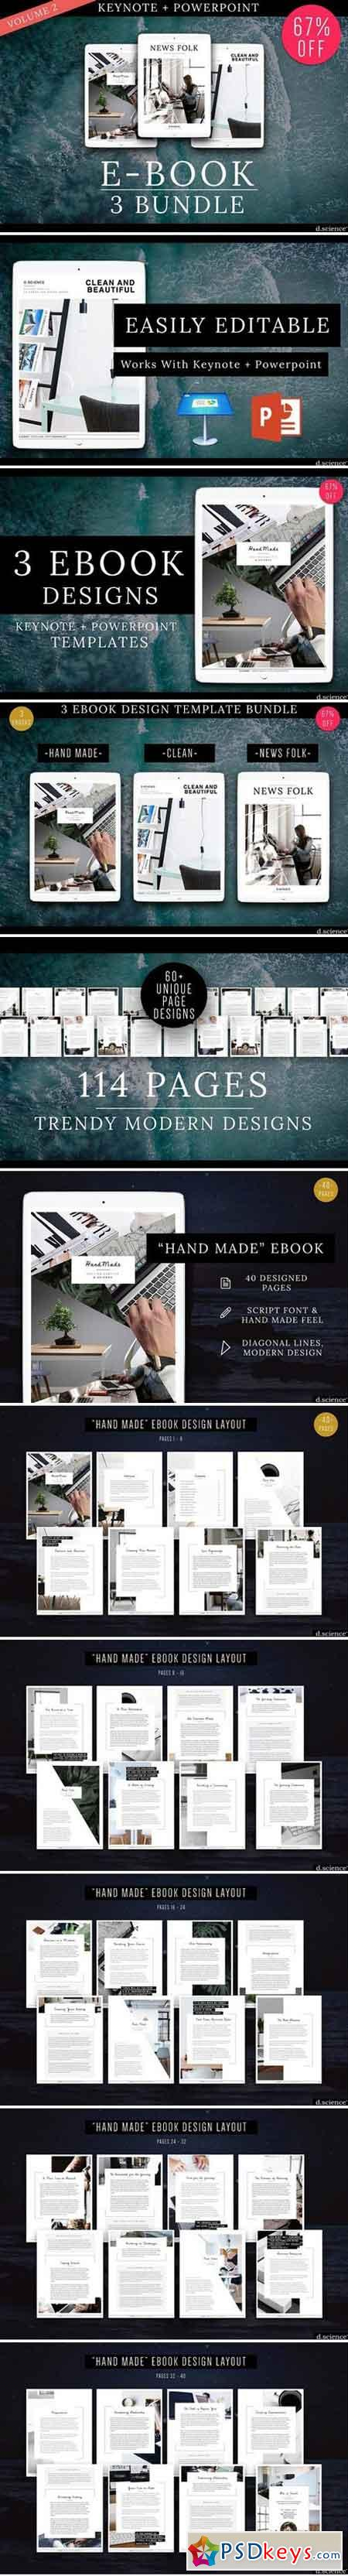 3X Ebook Bundle Templates 2004166